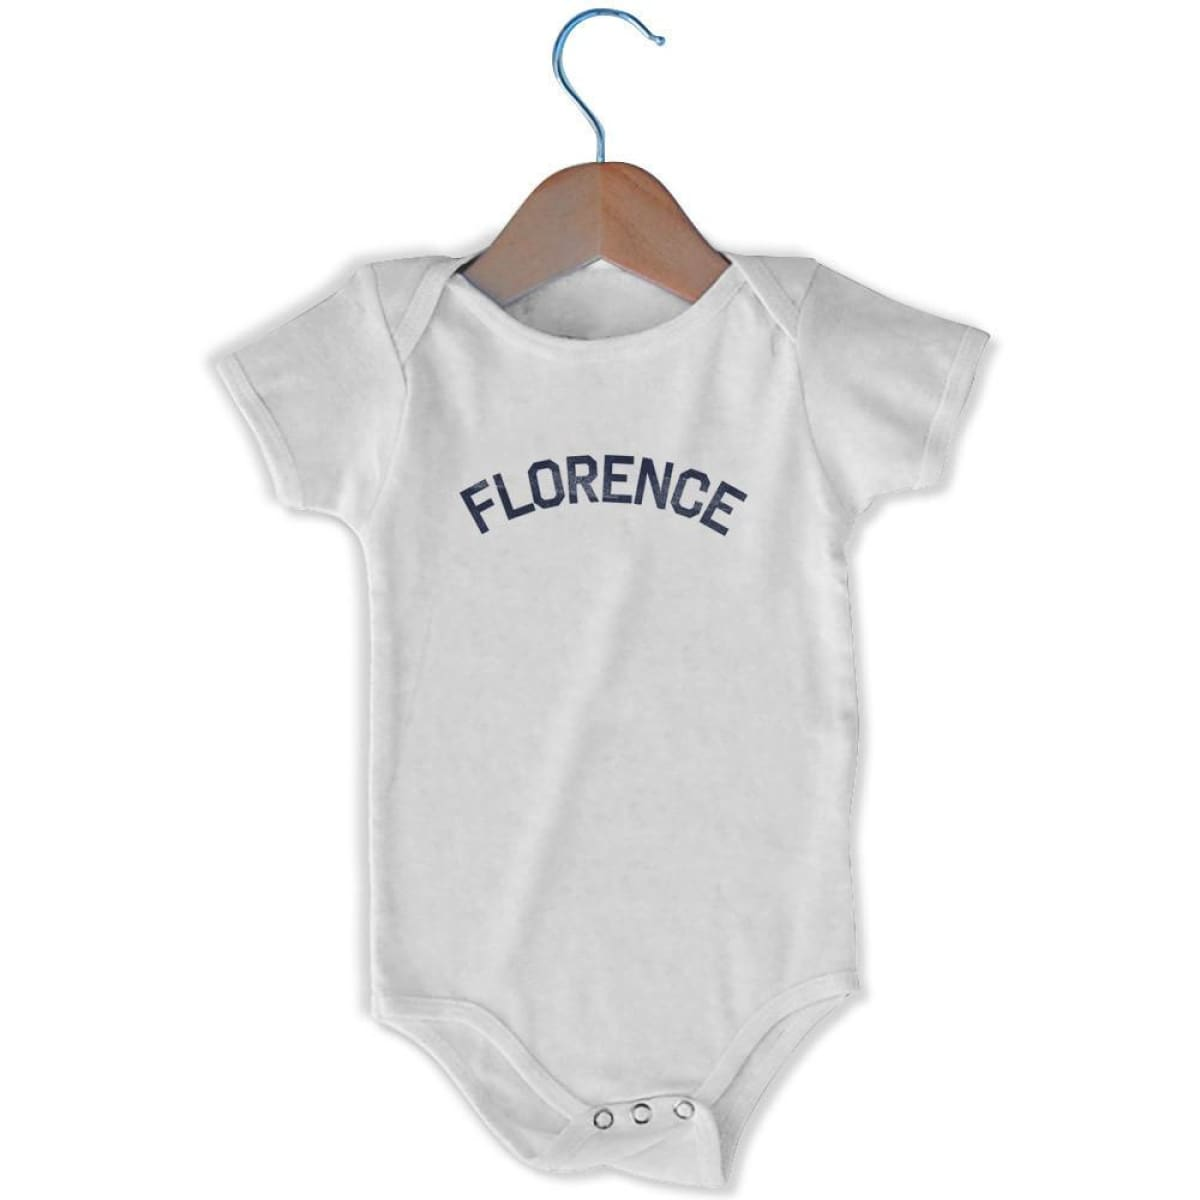 Florence City Infant Onesie - White / 6 - 9 Months - Mile End City